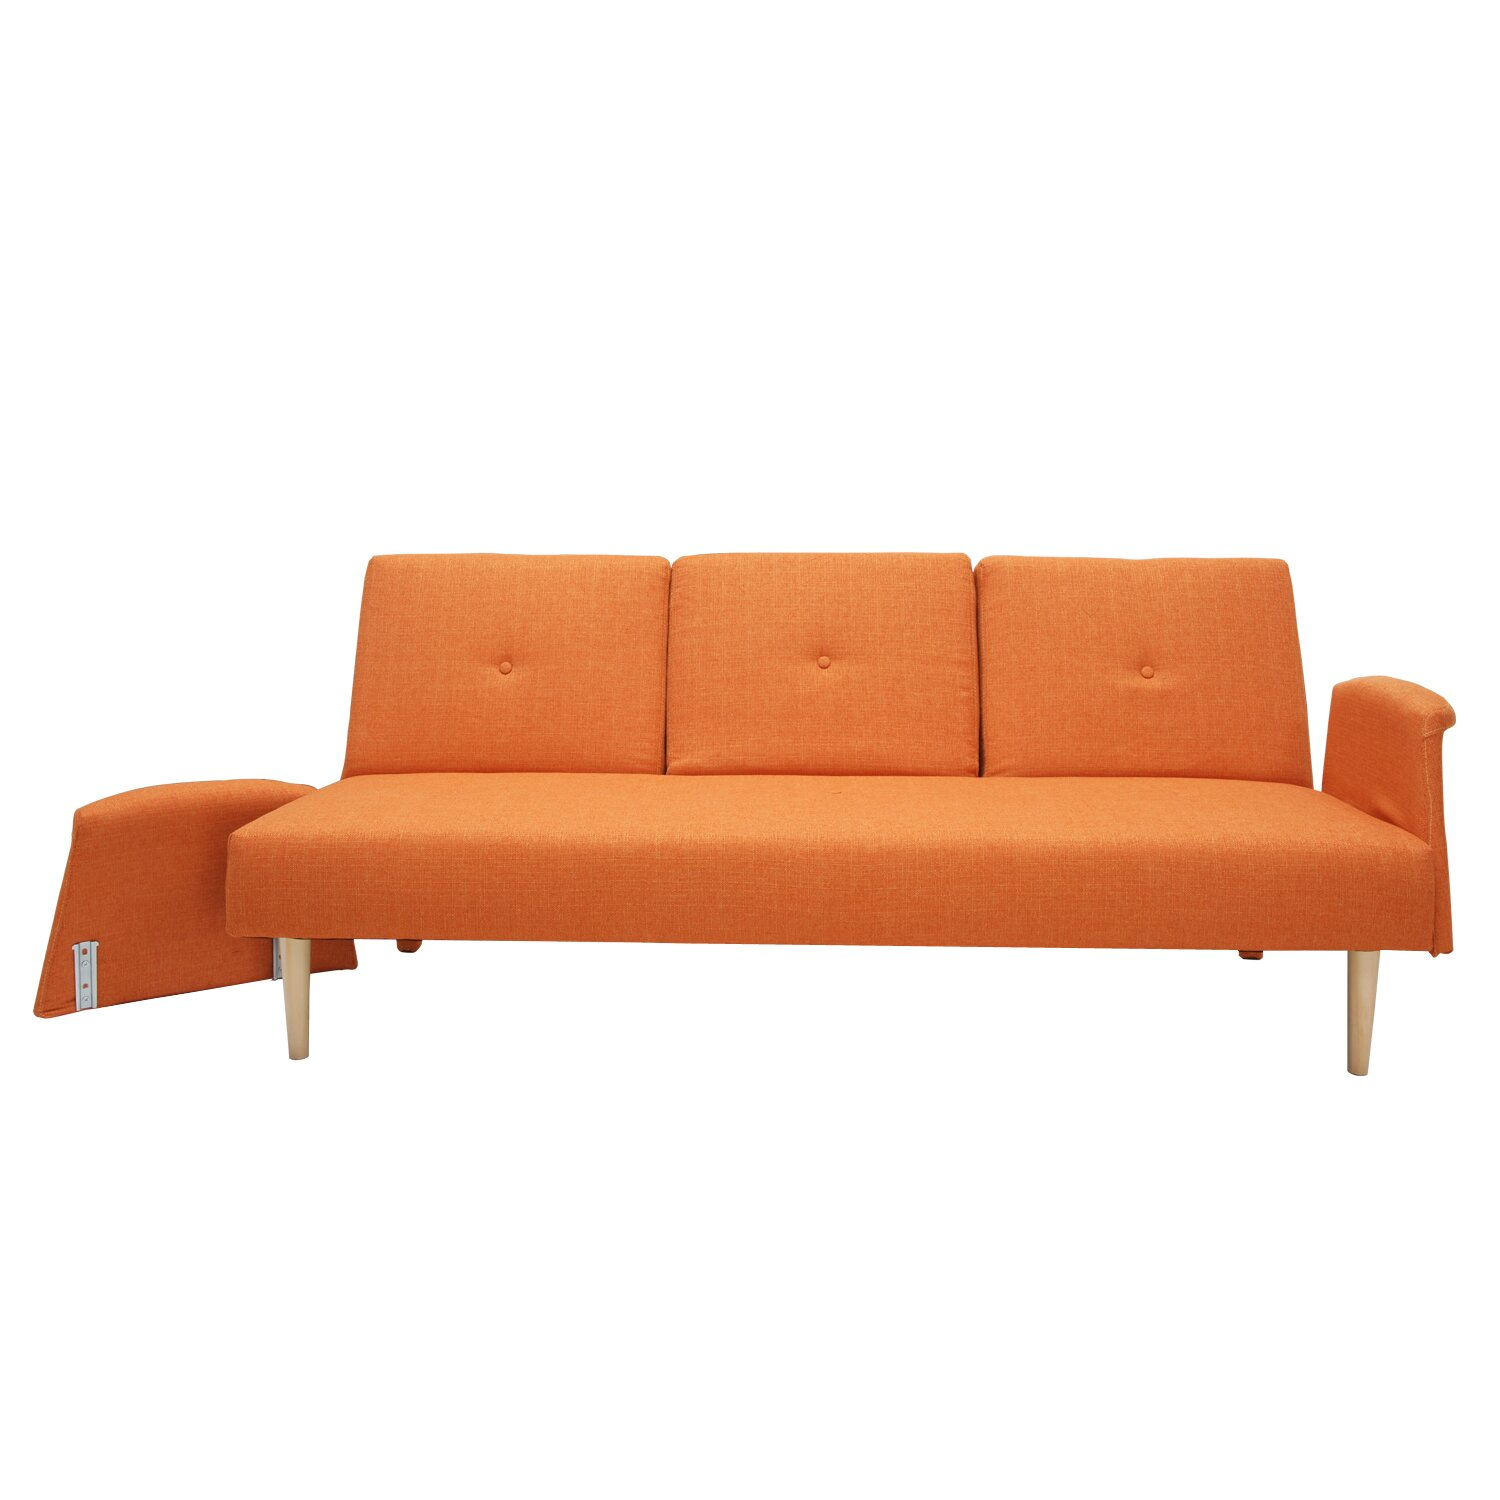 AdecoTrading Sleeper Sofa amp Reviews Wayfair : Adeco Fabric Fiber Sofa Bed Sofabed Lounge with Arm Soft Cushion Living Room Seat Wood legs e SF0003 SF0004 from www.wayfair.com size 1500 x 1500 jpeg 99kB